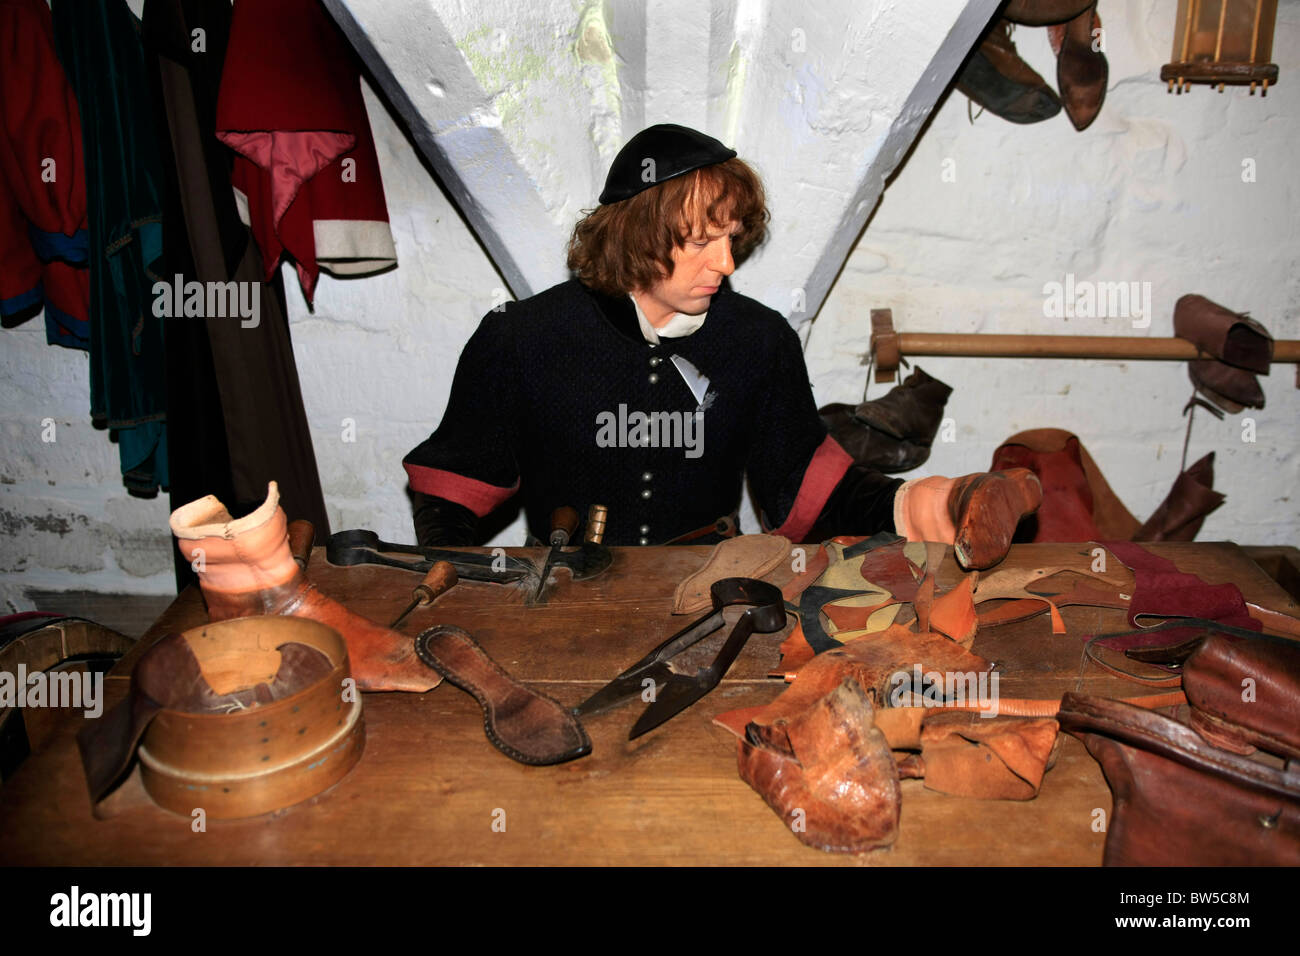 A Leather worker at work in the Undercroft of Warwick Castle - Stock Image